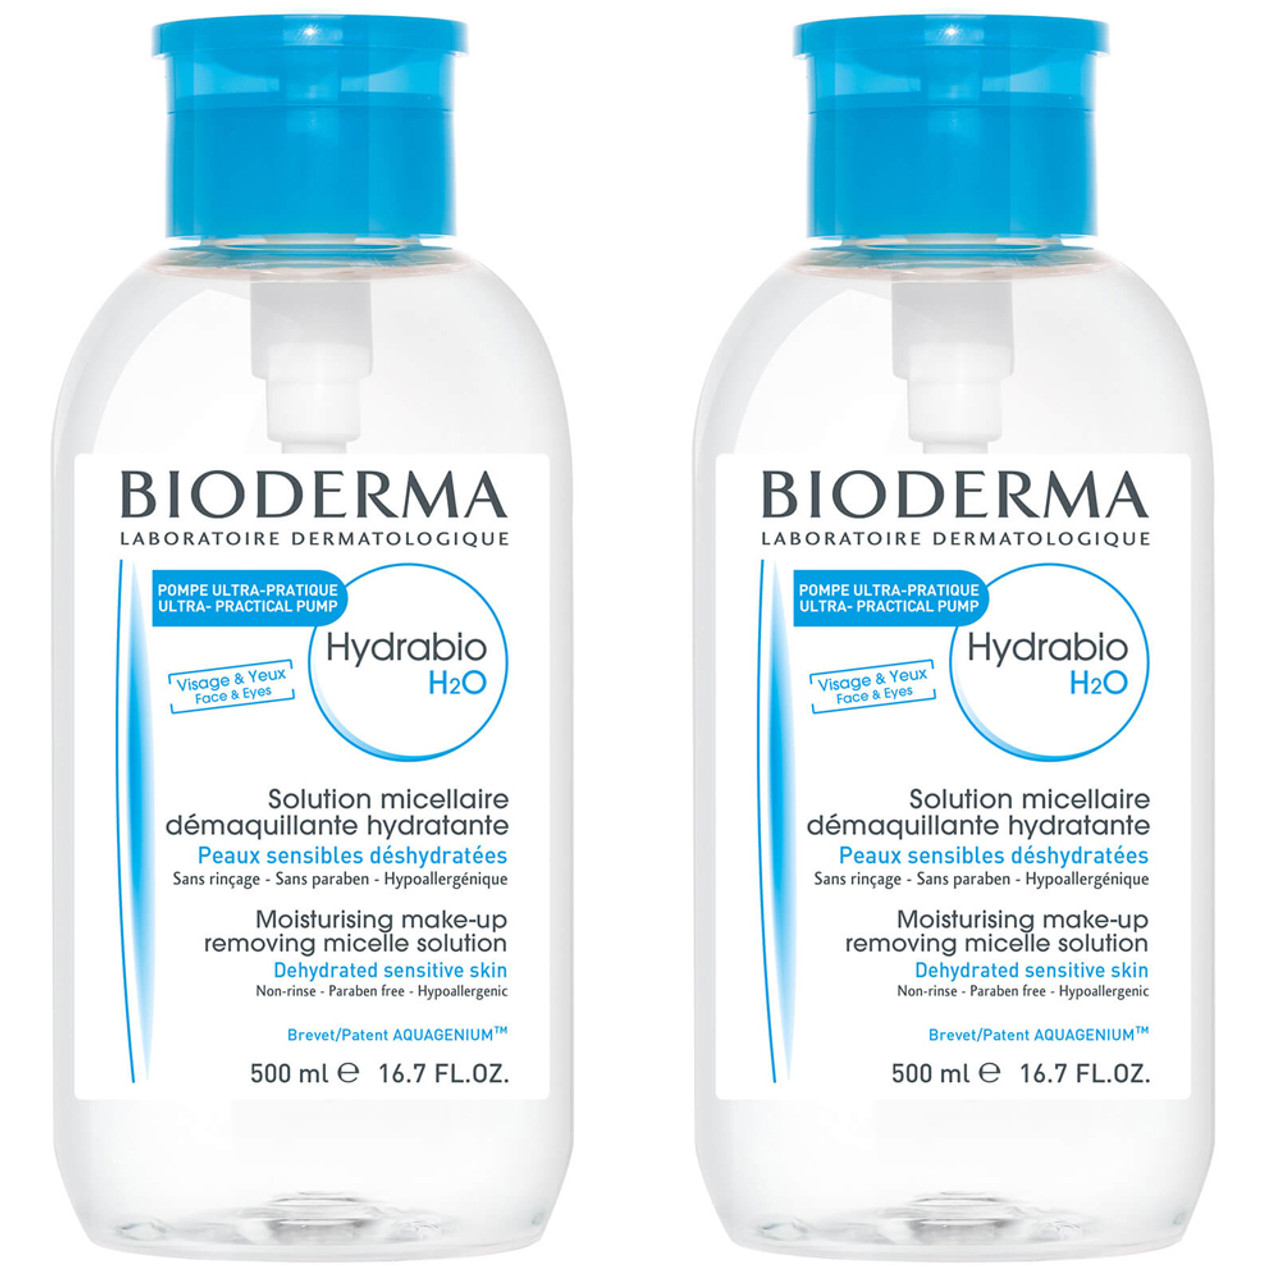 Bioderma Hydrabio H2O 250 mL